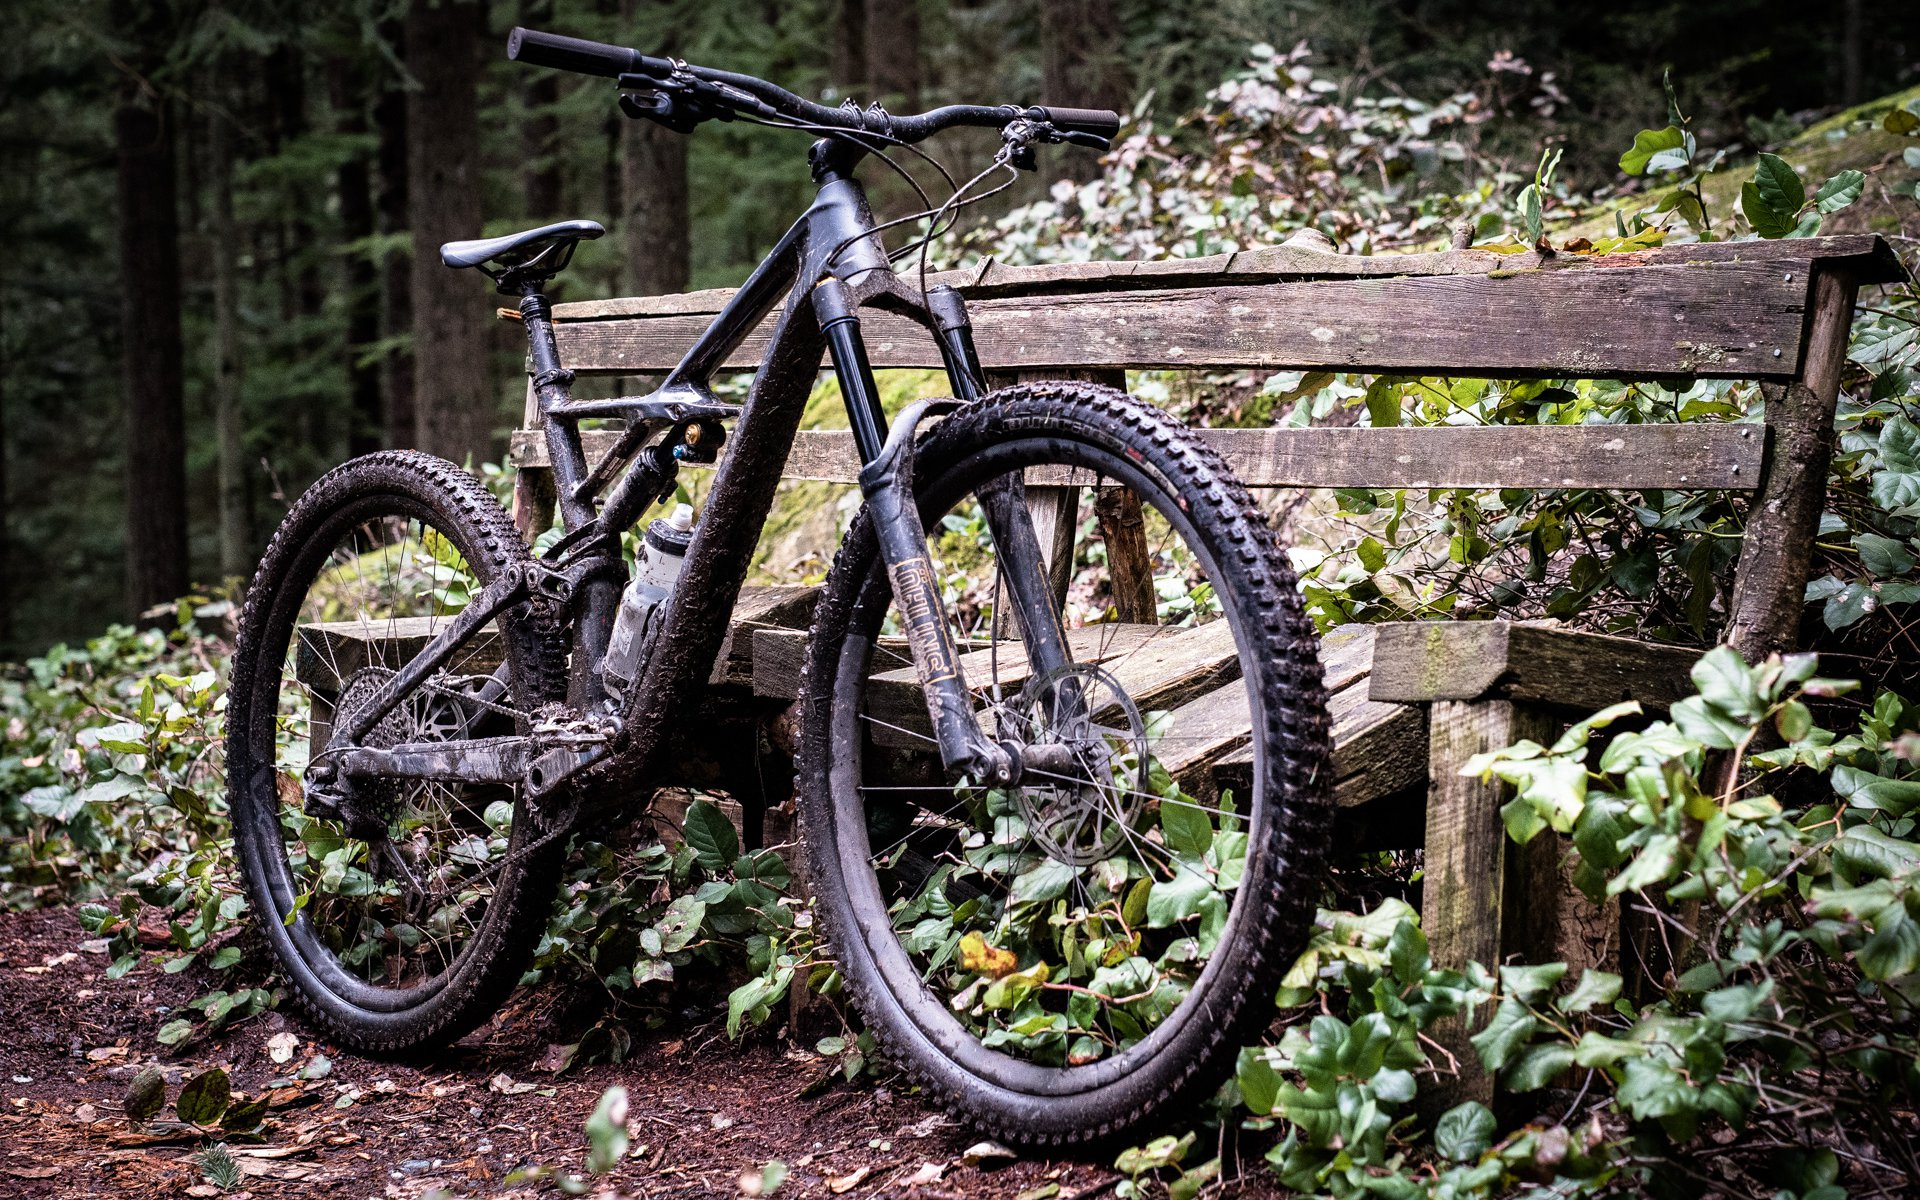 nsmb_2017_geareview_specialized_enduro29_PerrySchebel-7870.jpg